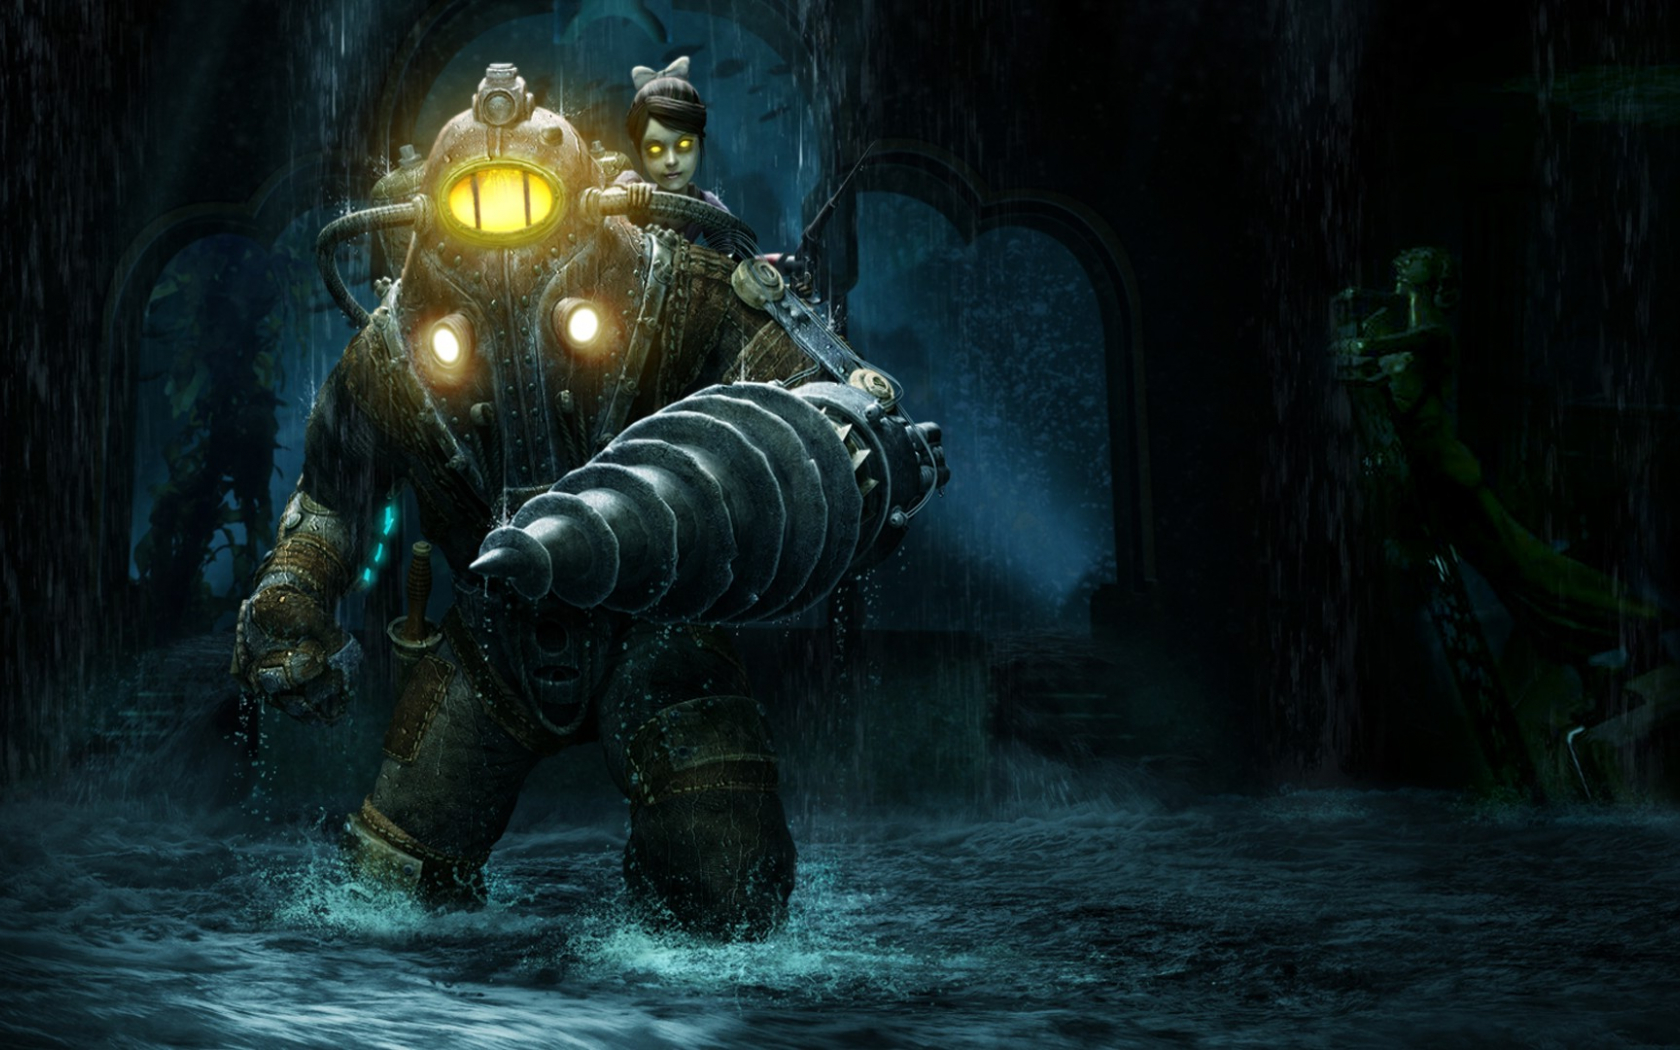 Free Download Bioshock 2 Video Games Big Daddy Little Sister